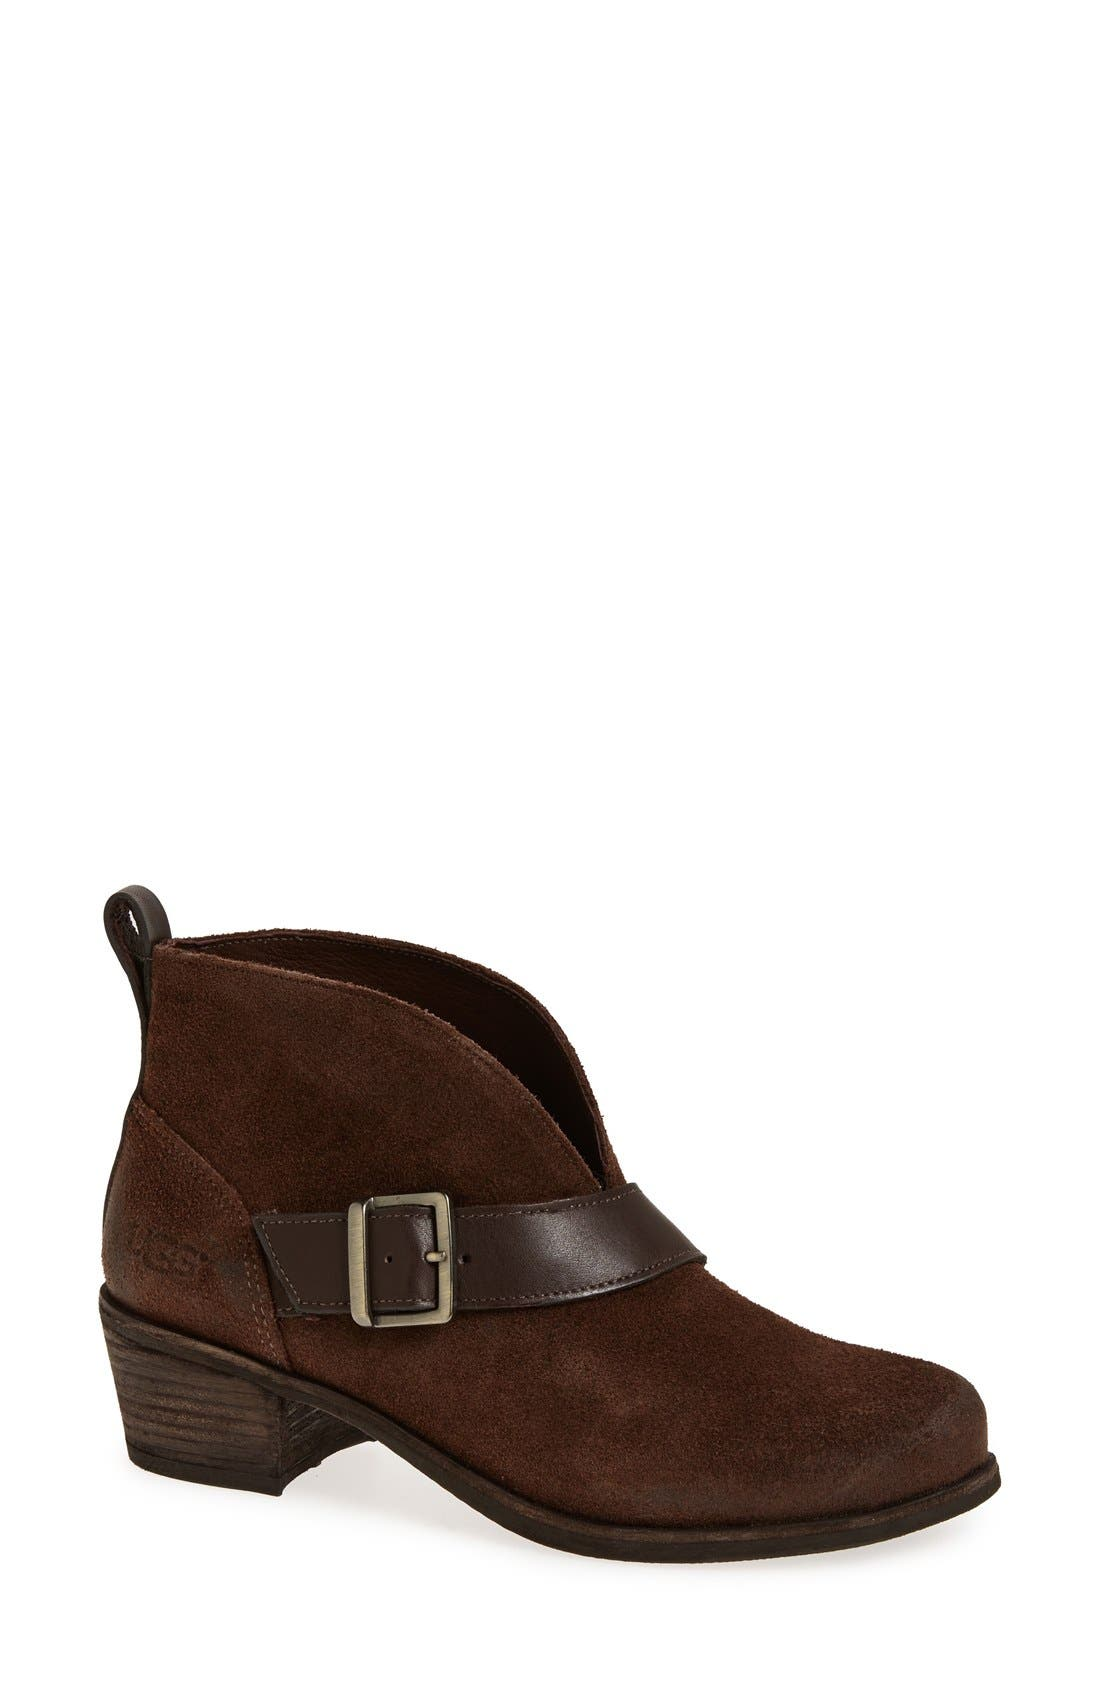 Alternate Image 1 Selected - UGG® 'Wright - Belted' Bootie (Women)